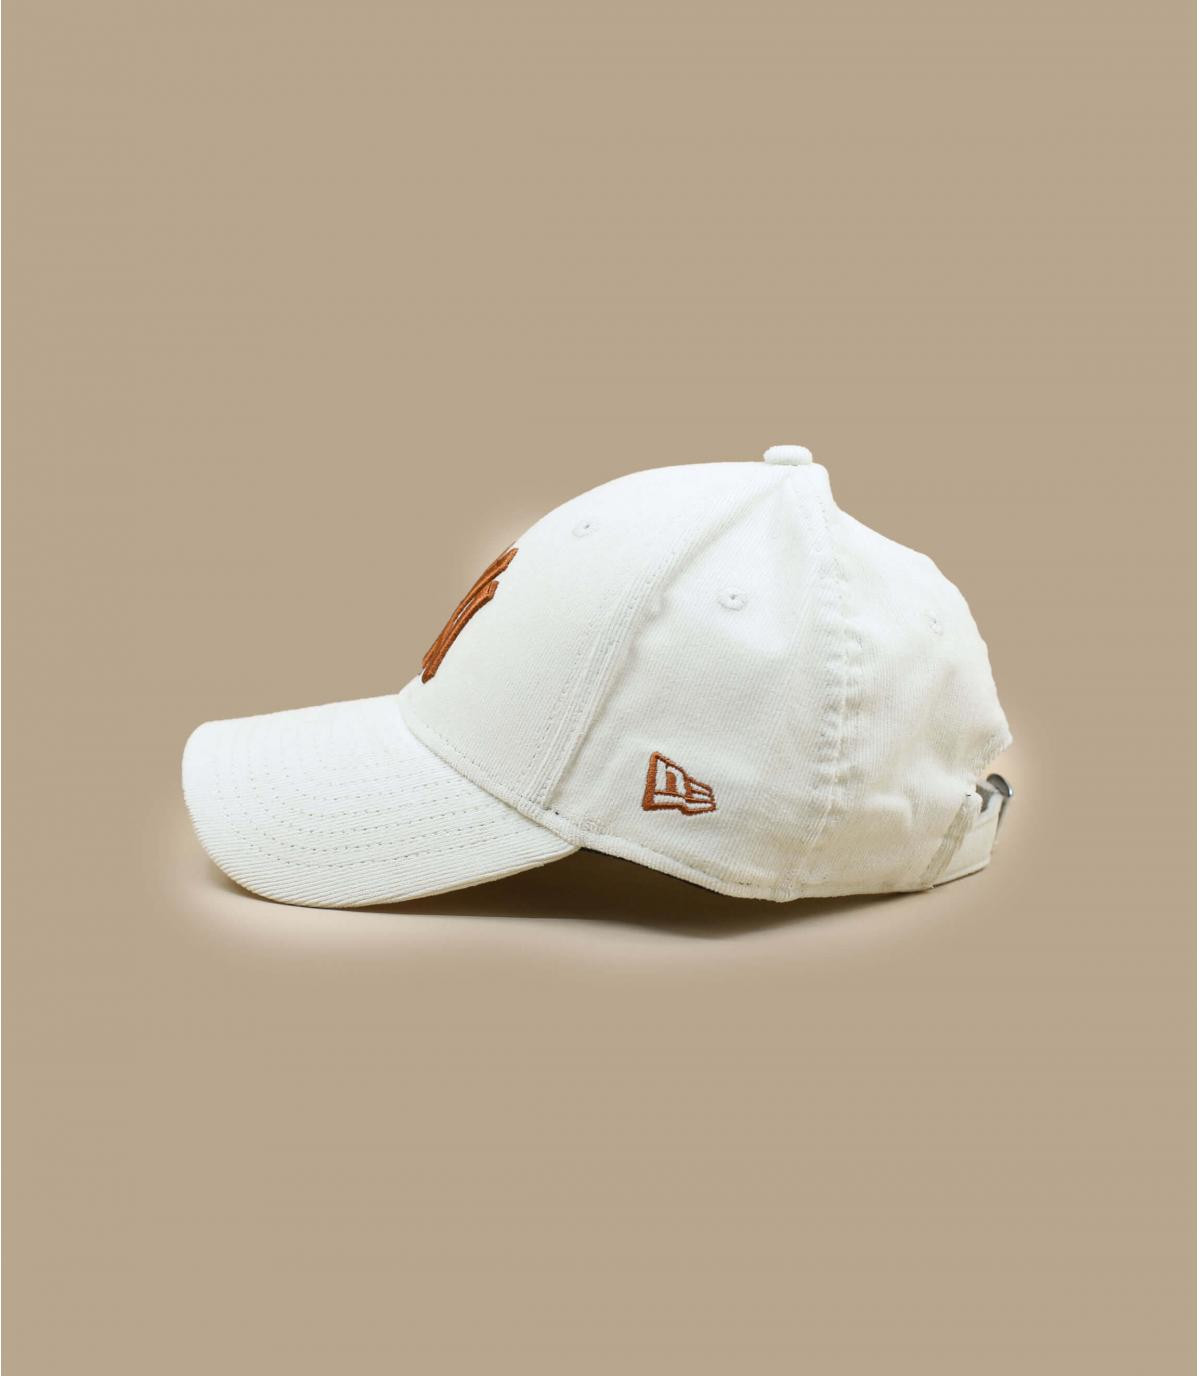 Détails Casquette Wmn Cord NY 940 offwhite toffee - image 3